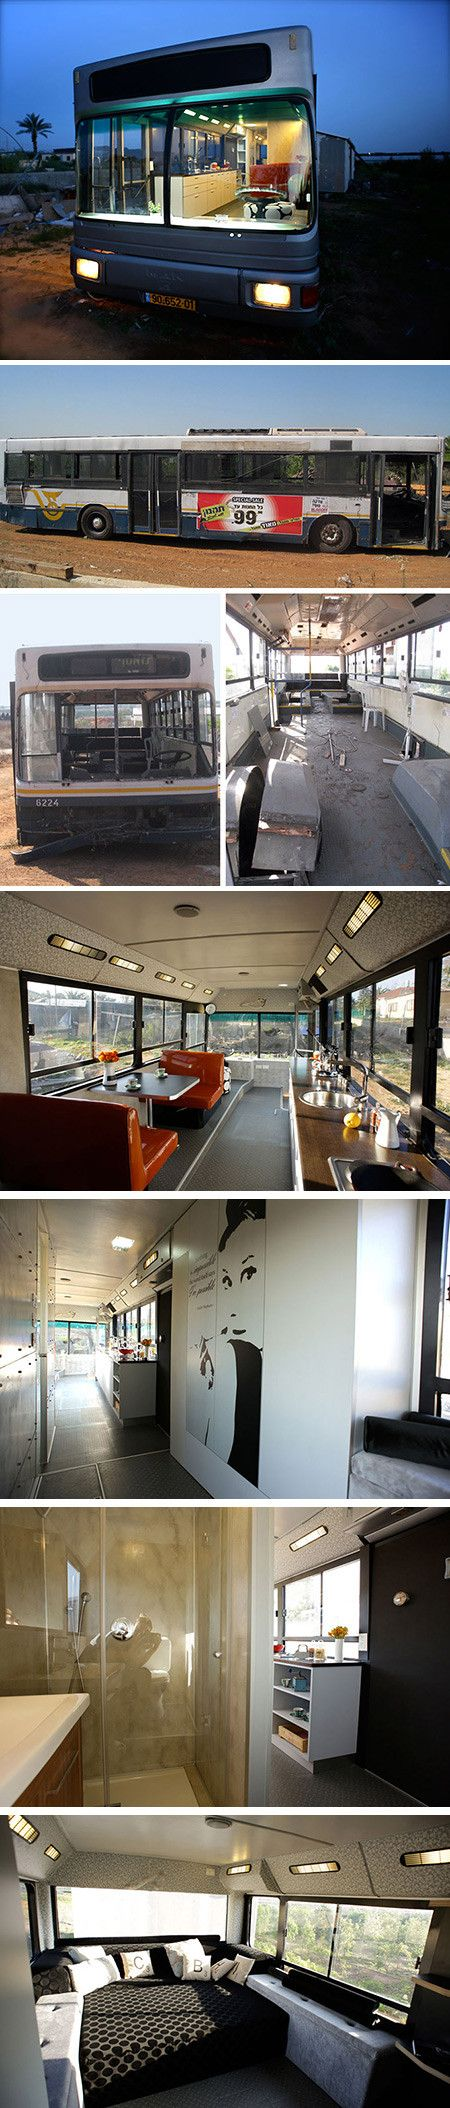 Two women(Tali Shaul, a psychotherapist and Hagit Morevski, an ecological pond water treatment specialis) living in Even Yehuda have come up with a creative solution to the Israeli housing crisis: they transformed an out-of-use public bus into a luxury living space.